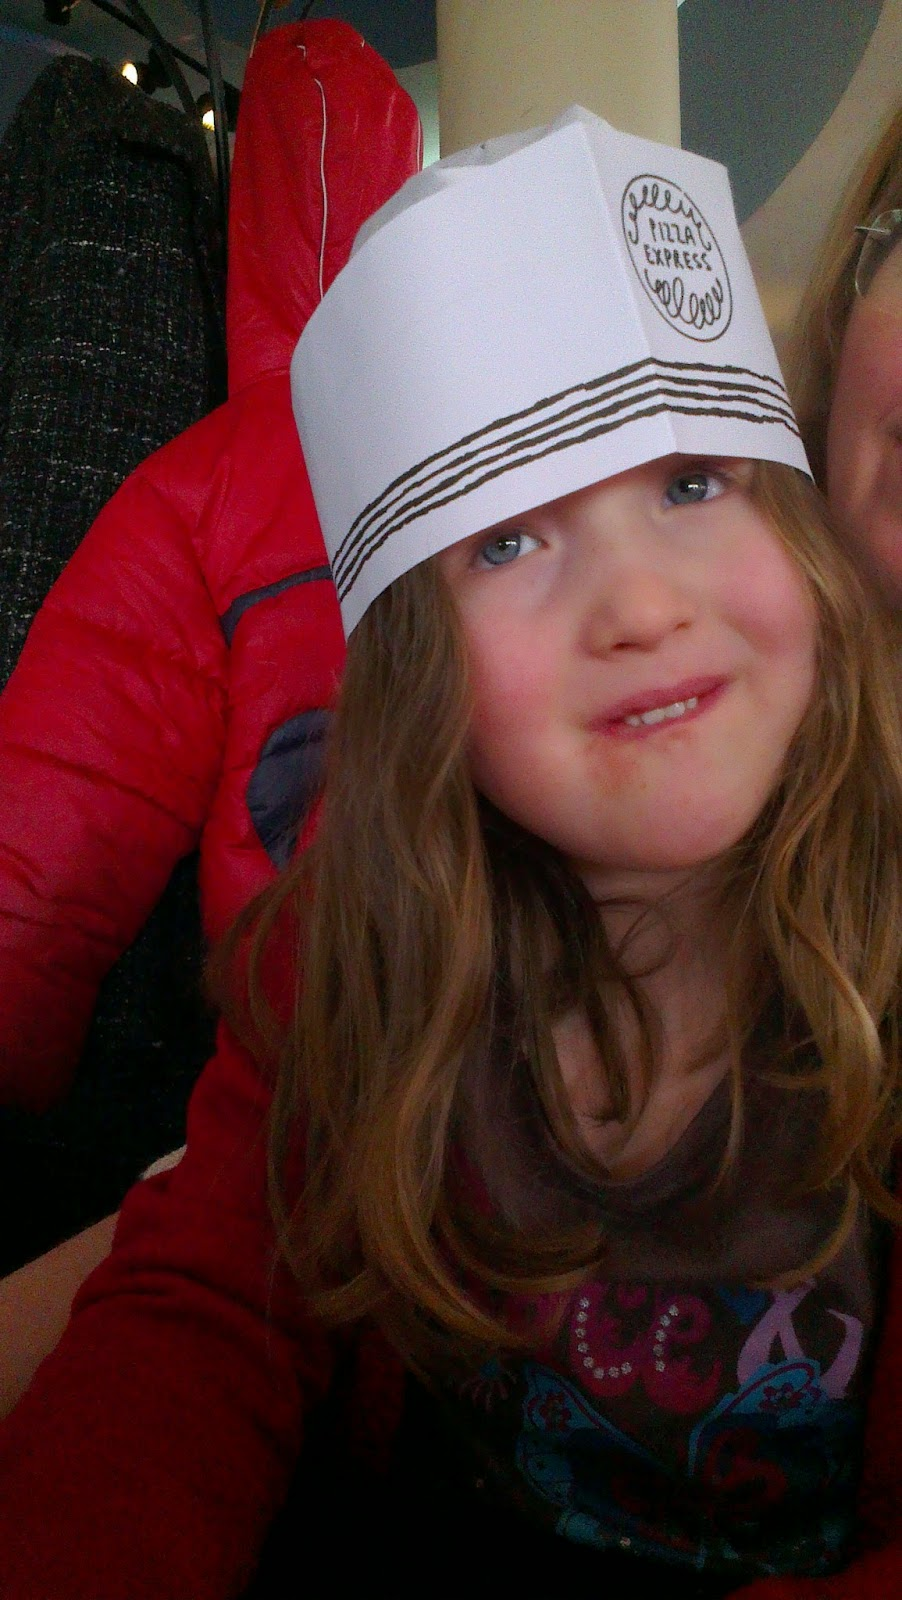 Caitlin wearing a Pizza Express paper hat